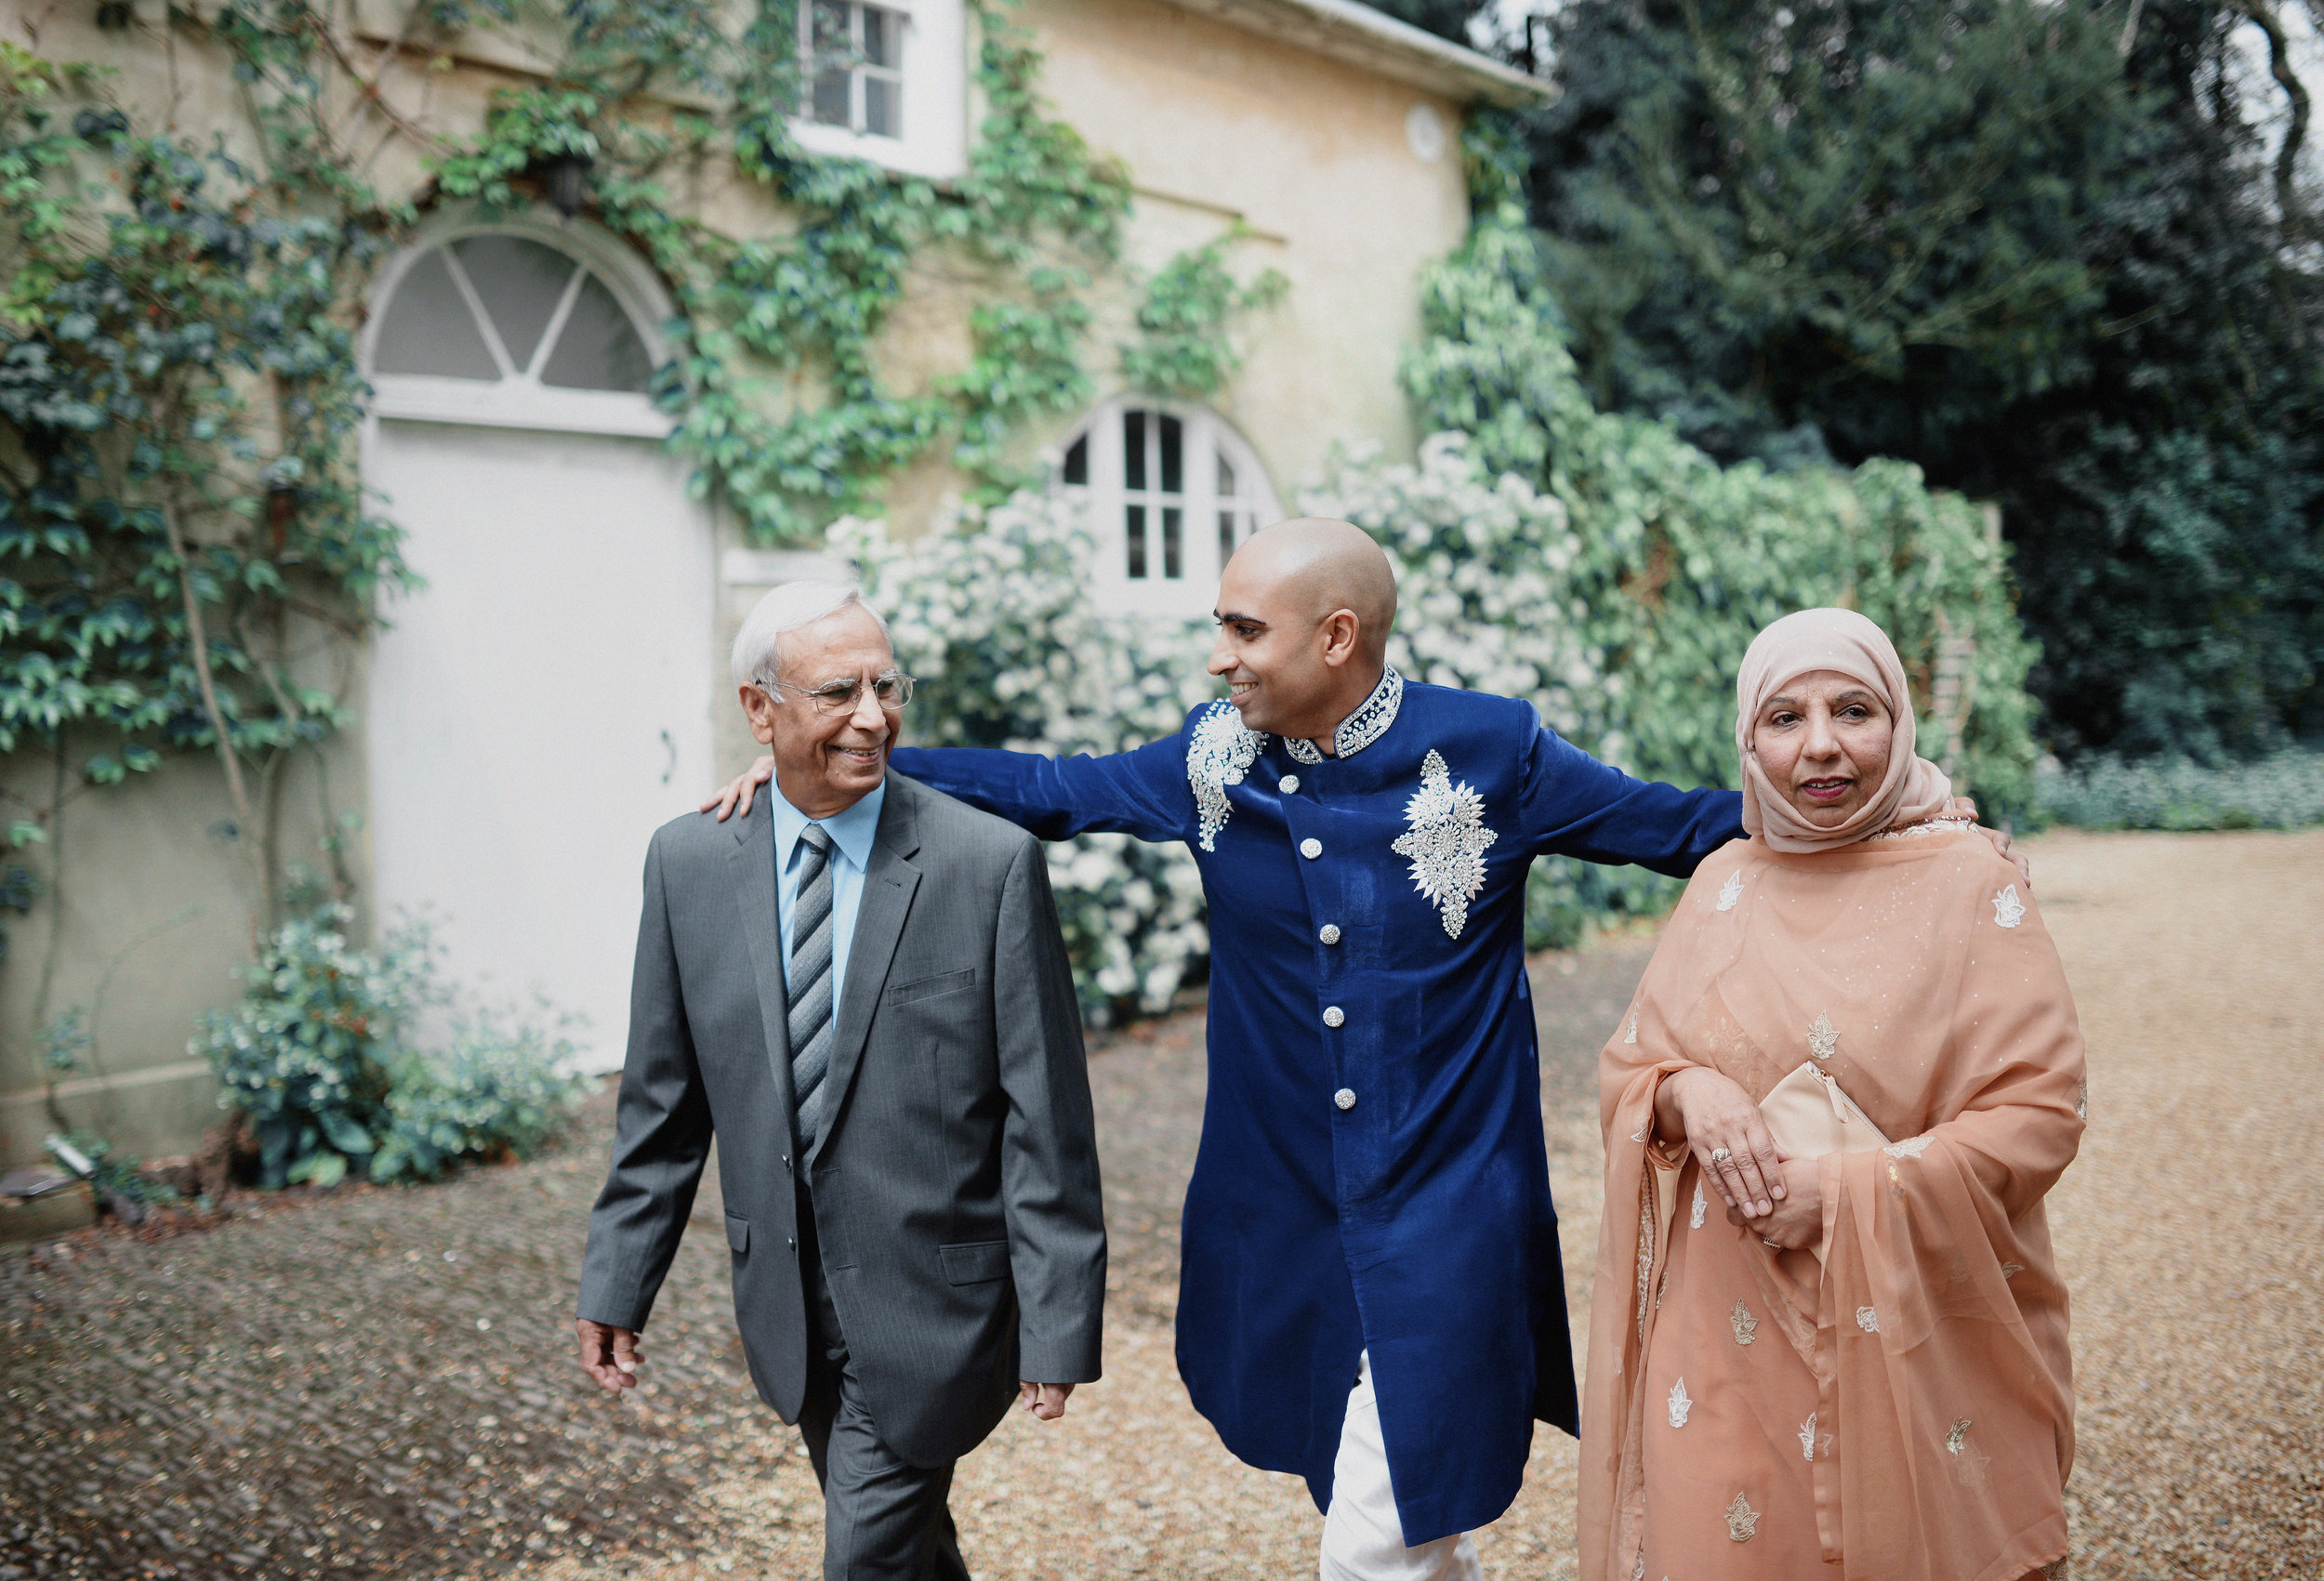 Mixed-religious Yorkshire wedding ceremony. Groom pictured wearing traditional Pakistani attire alongside his parents.